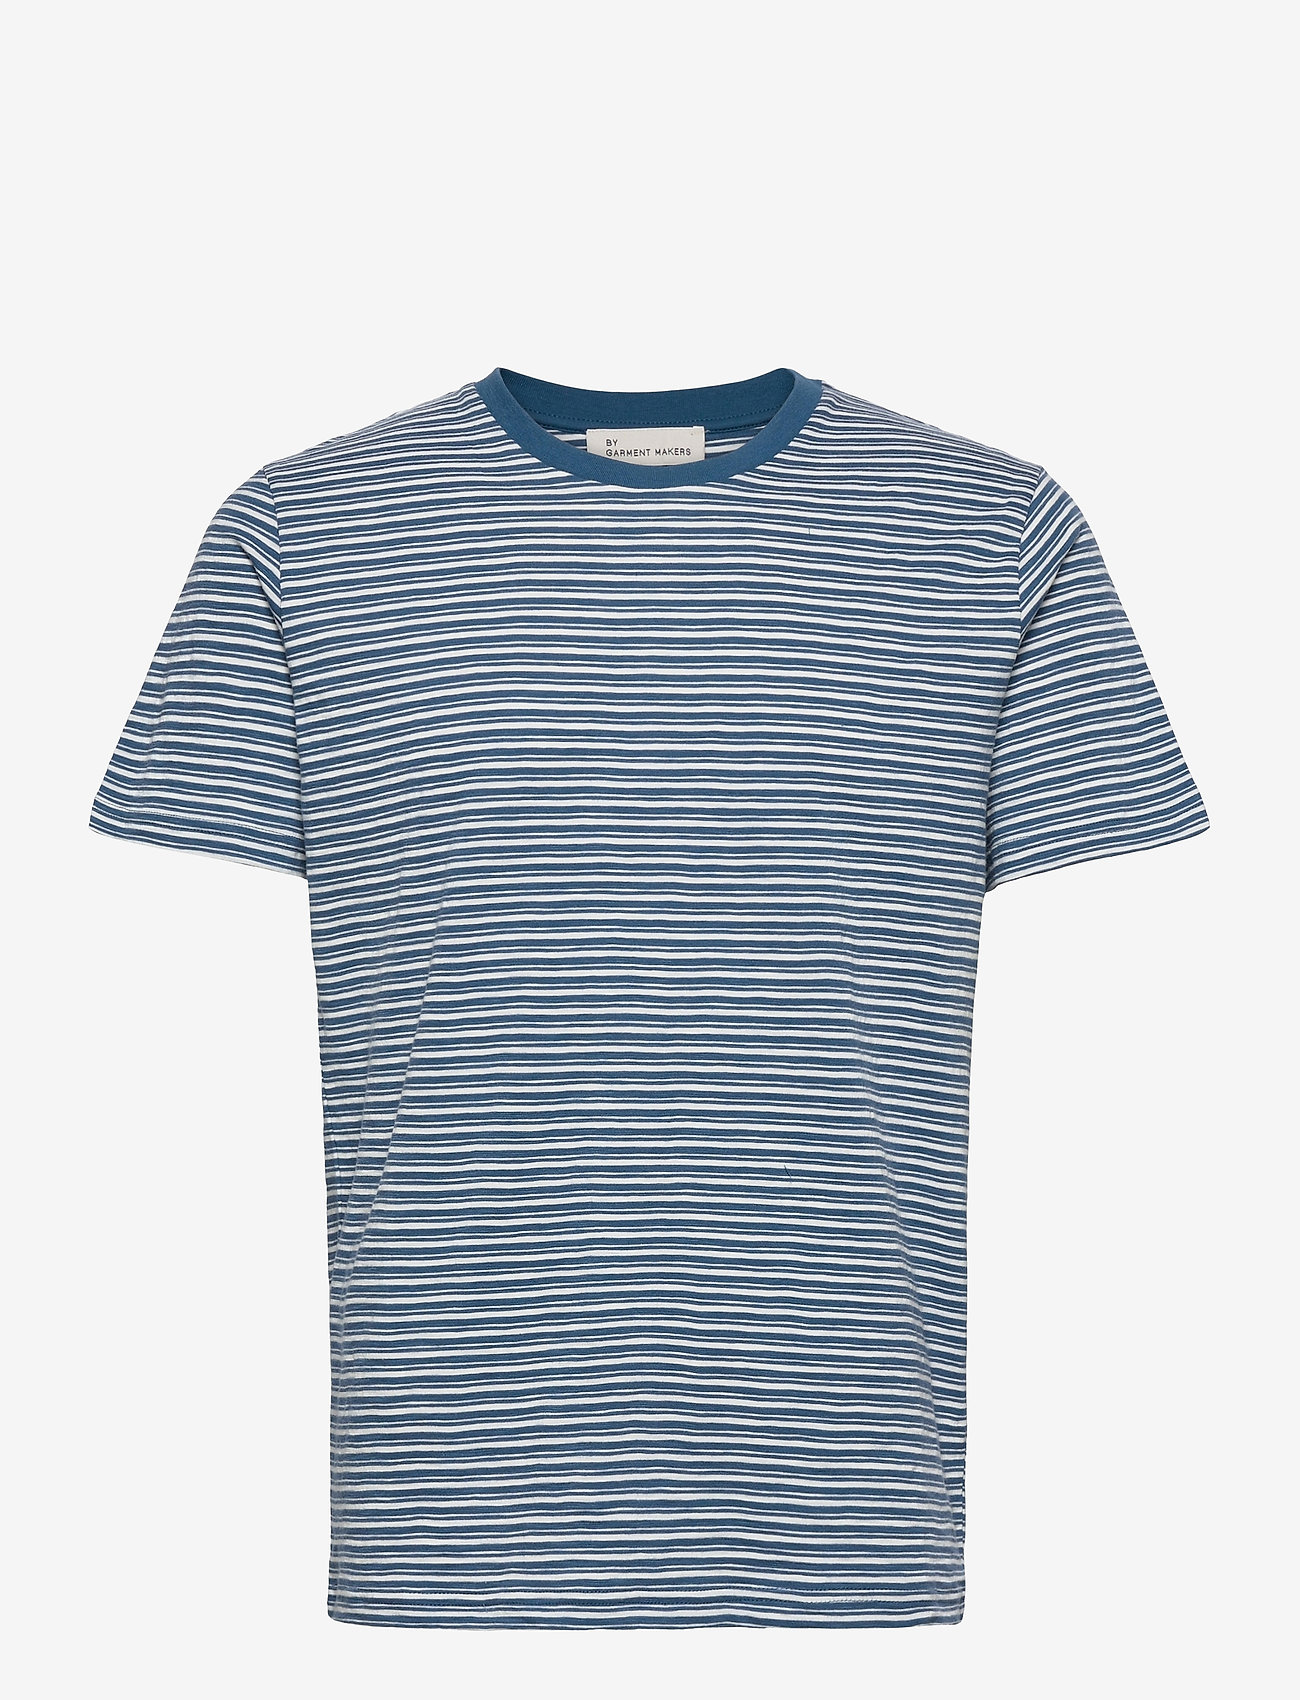 By Garment Makers - The Organic Multistriped Tee - t-shirts à manches courtes - 7002 color3 - 1